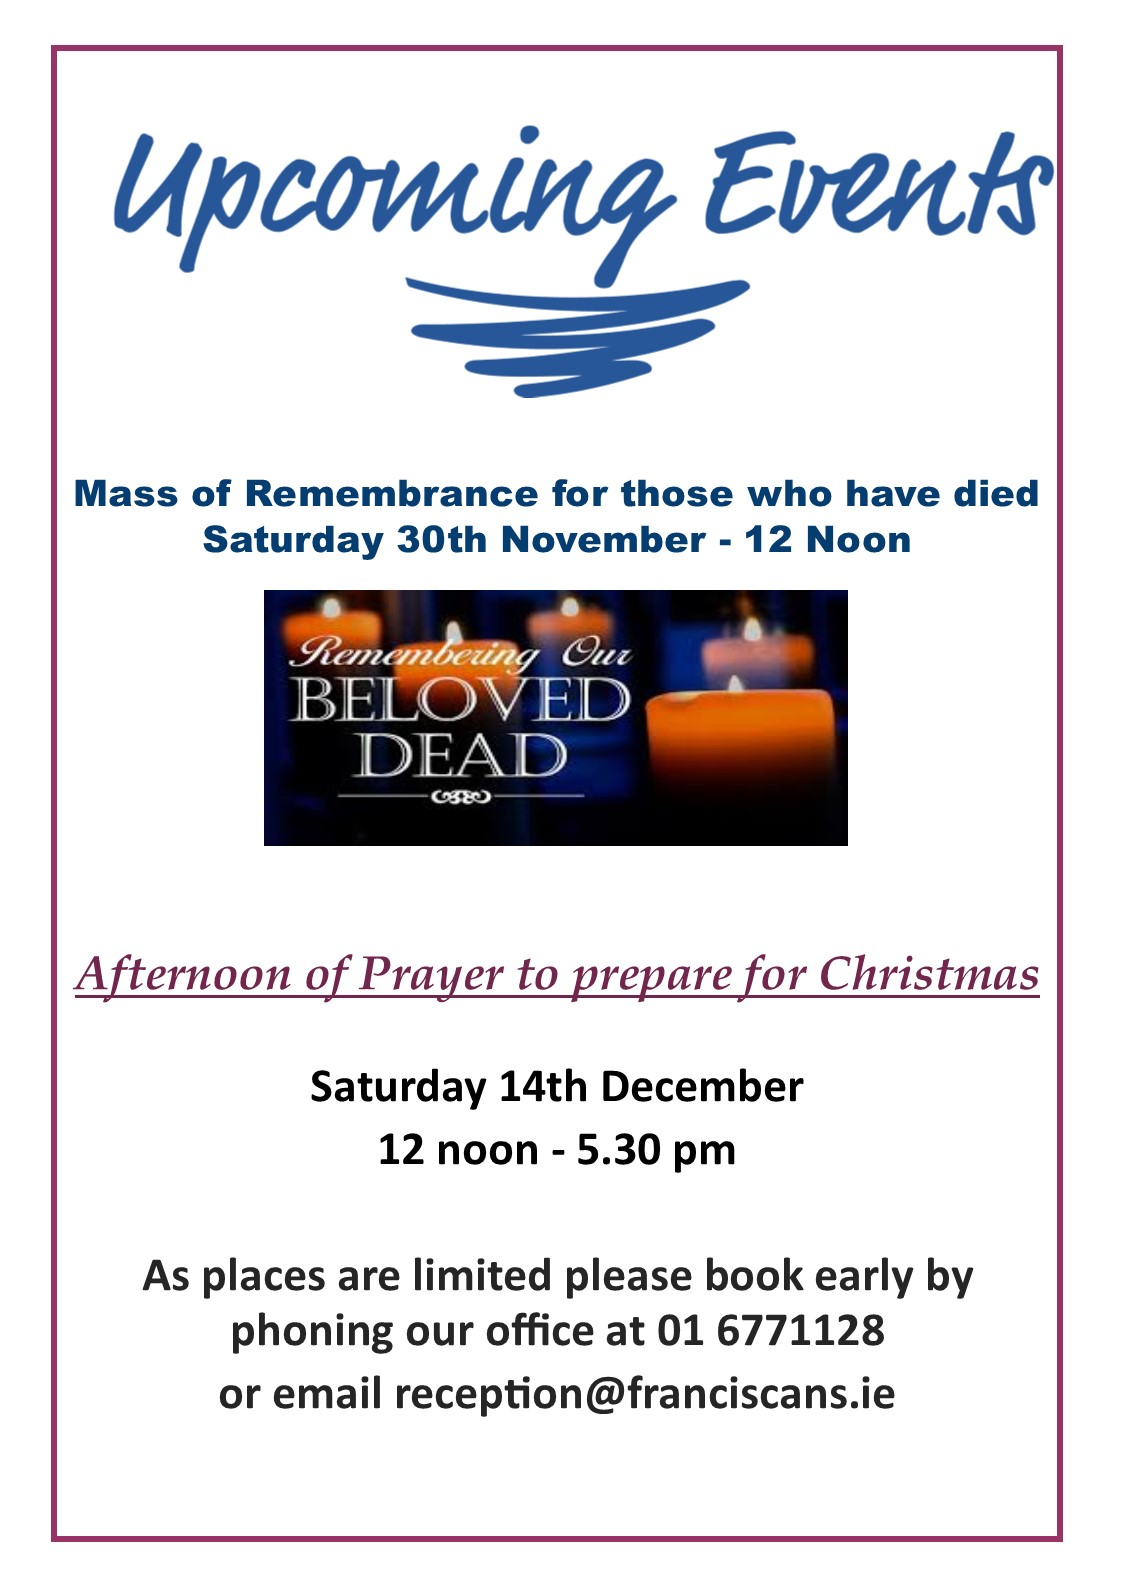 Advent retreat and mass for dead poster 2019